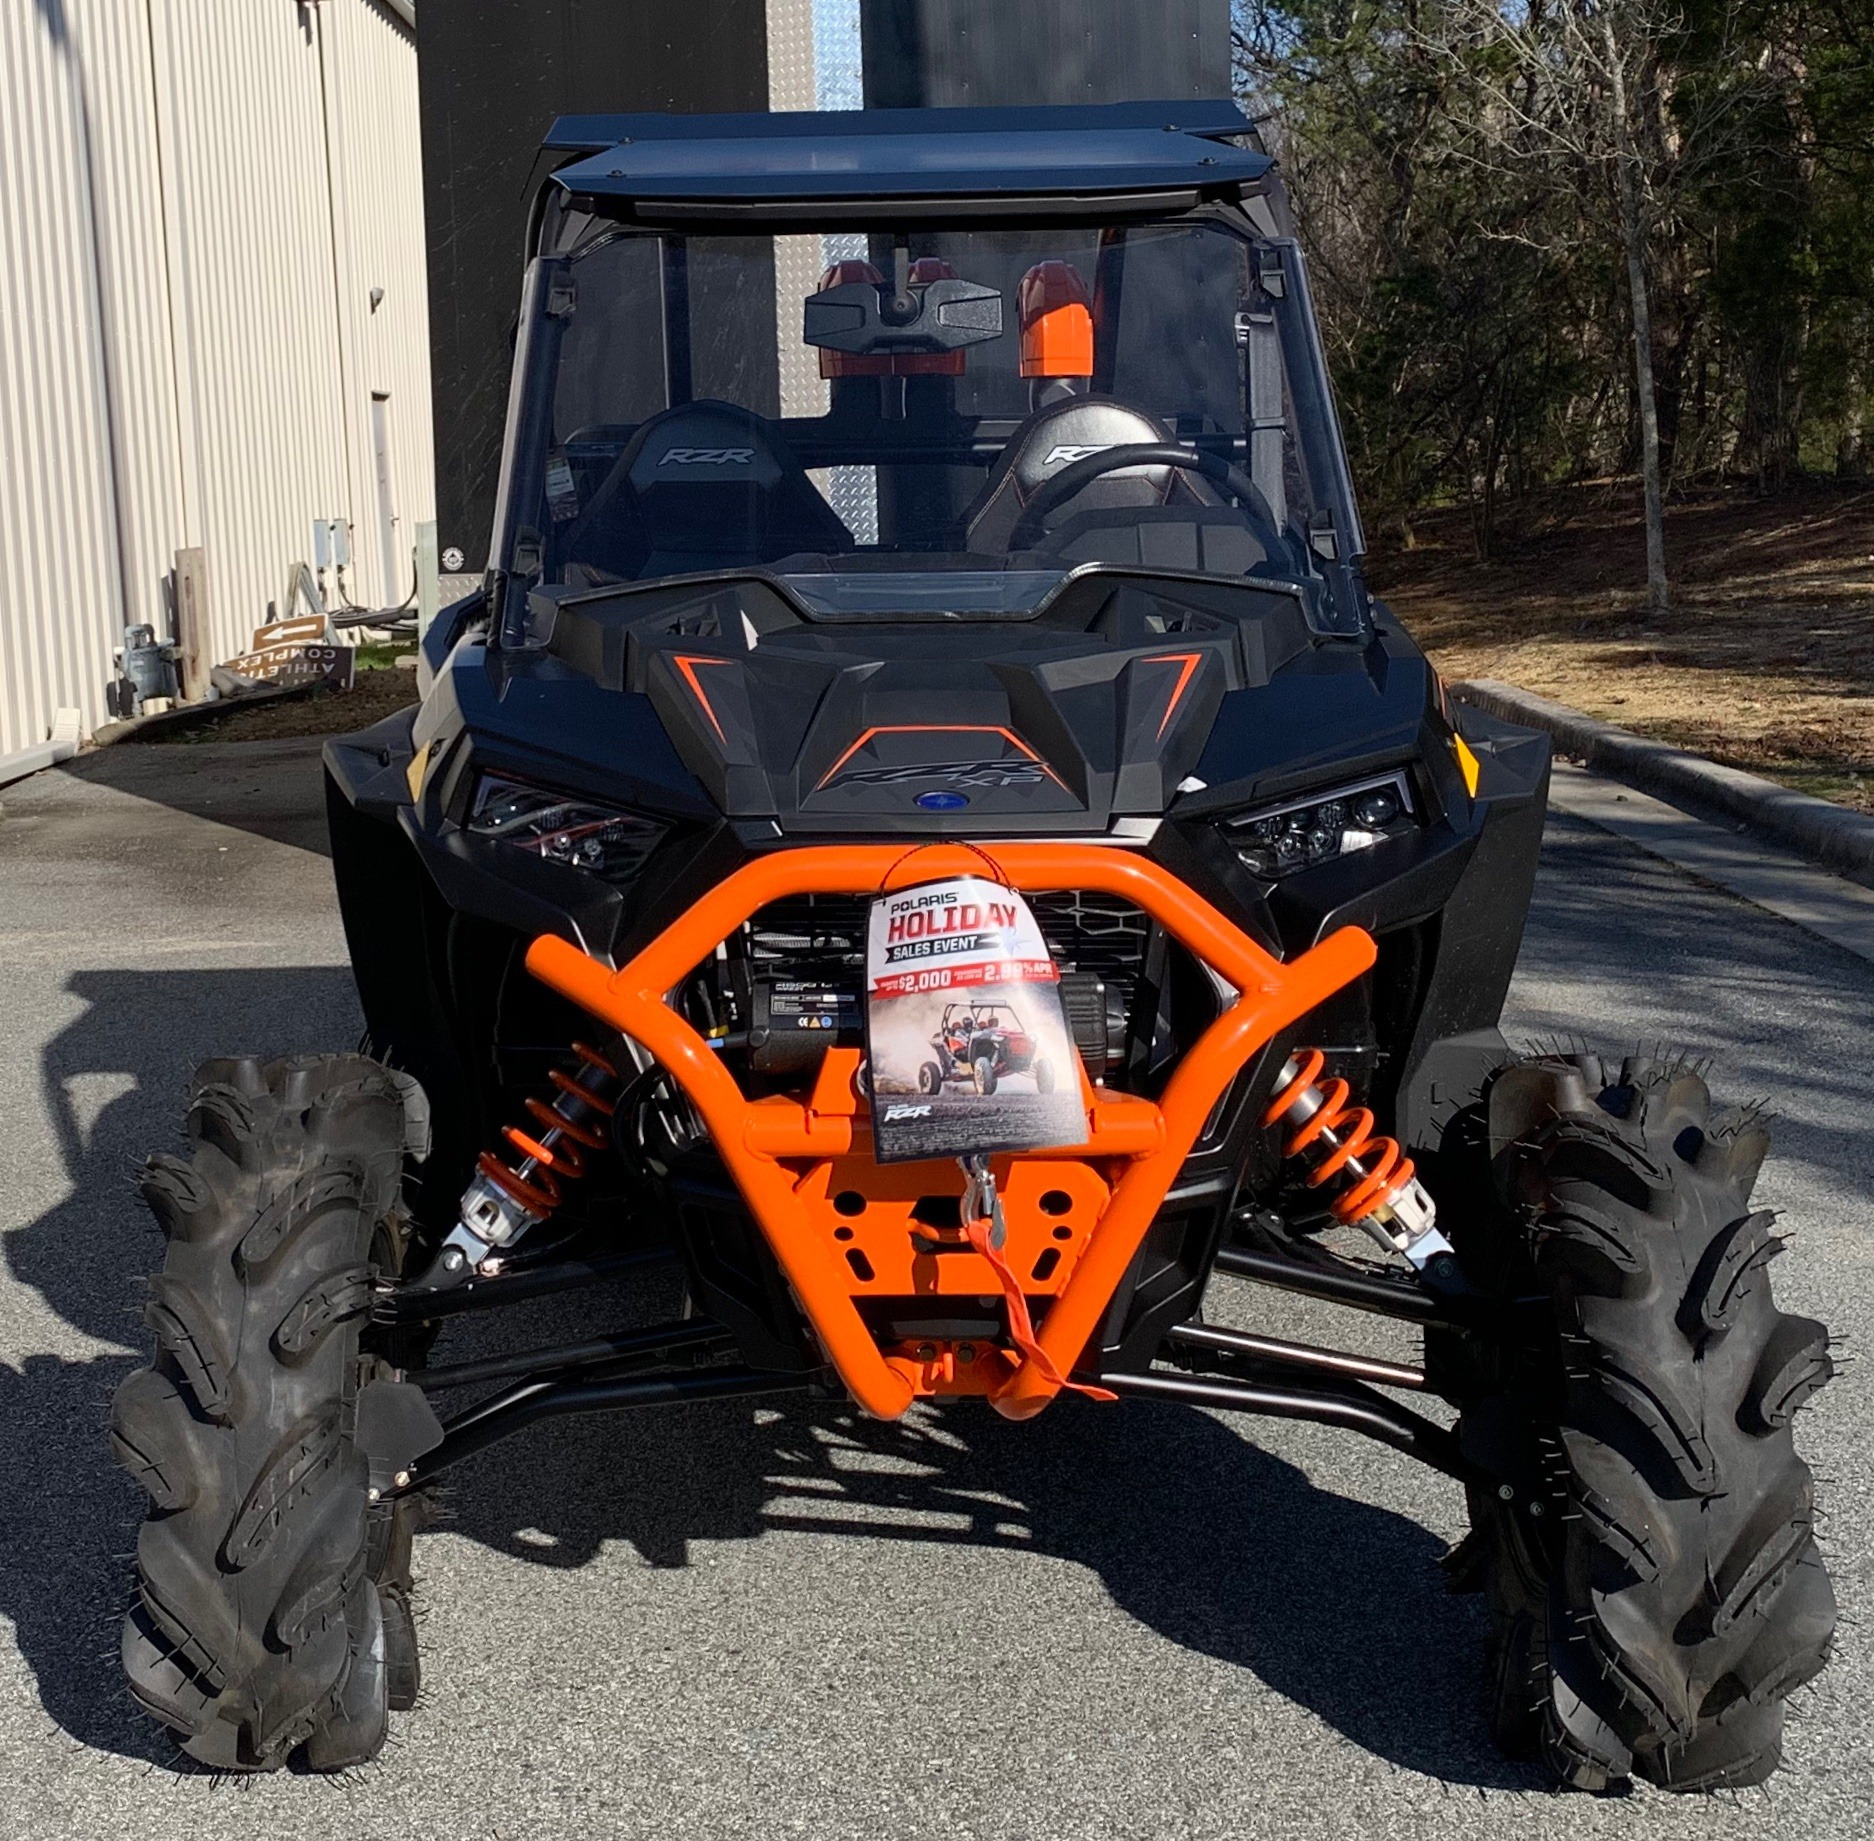 2019 Polaris RZR XP 1000 High Lifter in High Point, North Carolina - Photo 2